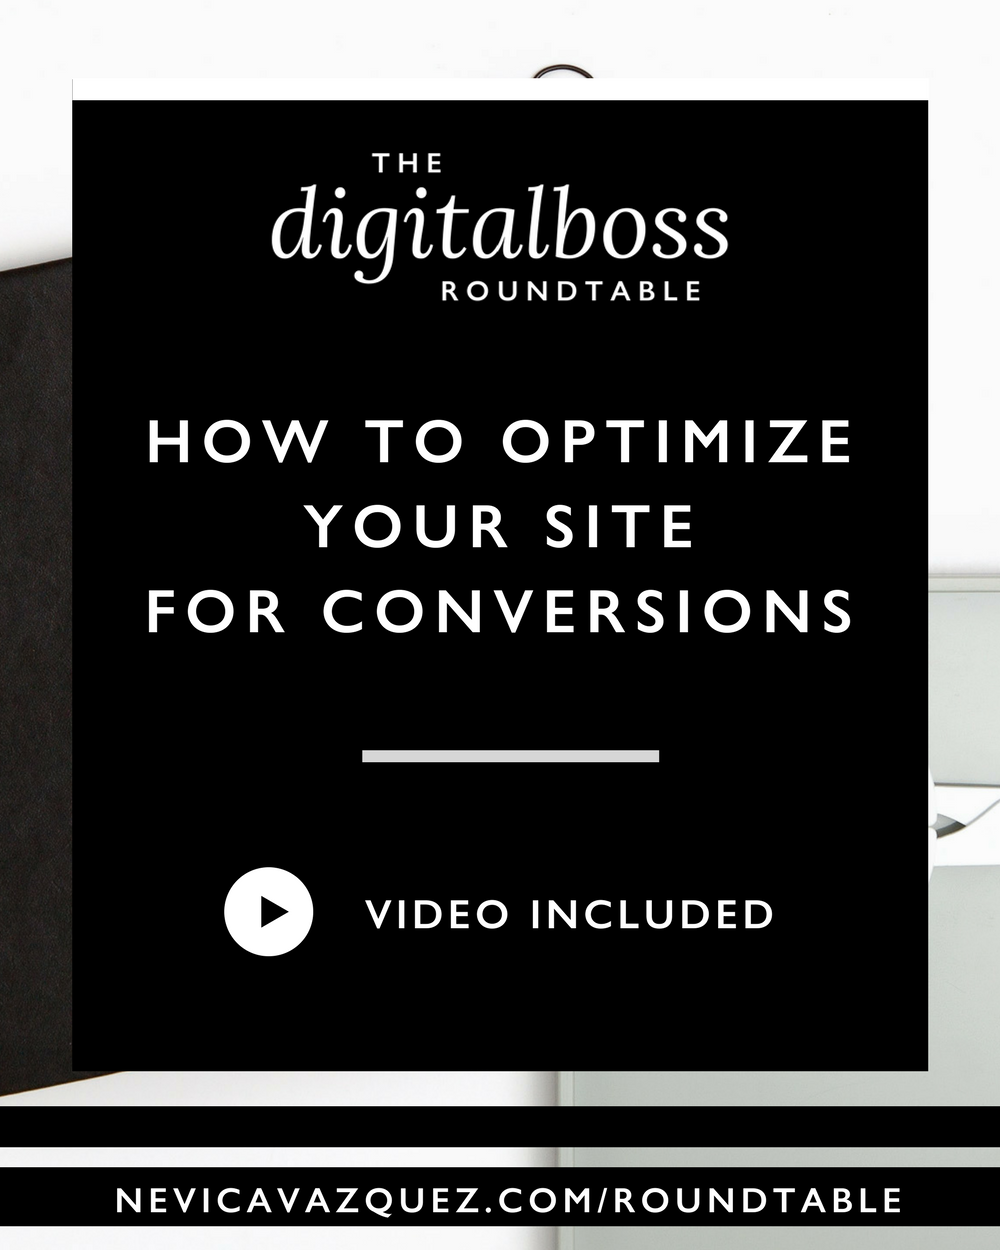 How To Optimize Your Site For Conversions [Roundtable Series with Cathy Olson, Heidi Yarger, and Krista Rae]